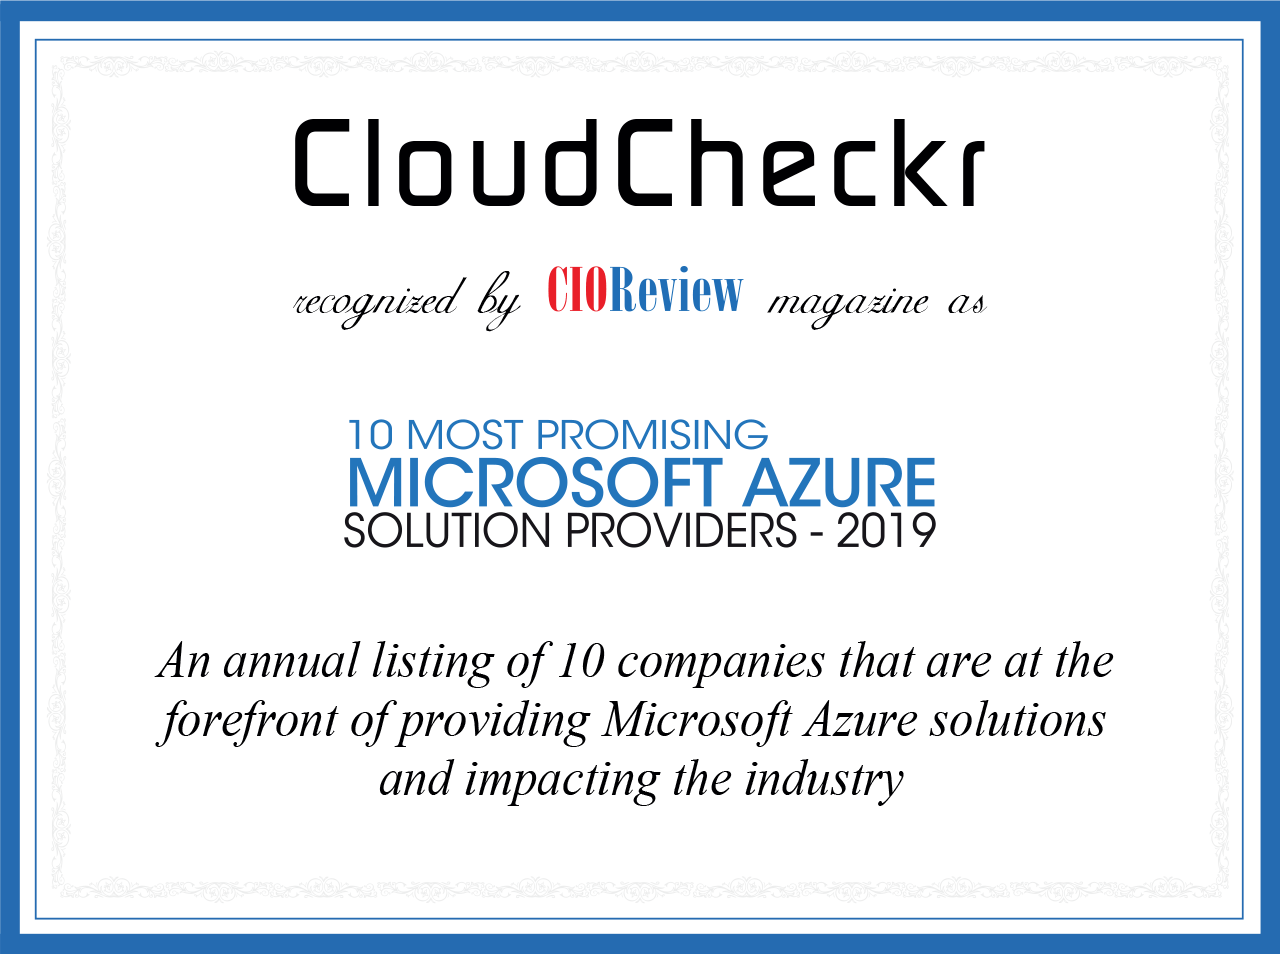 CloudCheckr is a CIOReview 'Top 10 Most Promising Microsoft Azure Solution Partner' of 2019